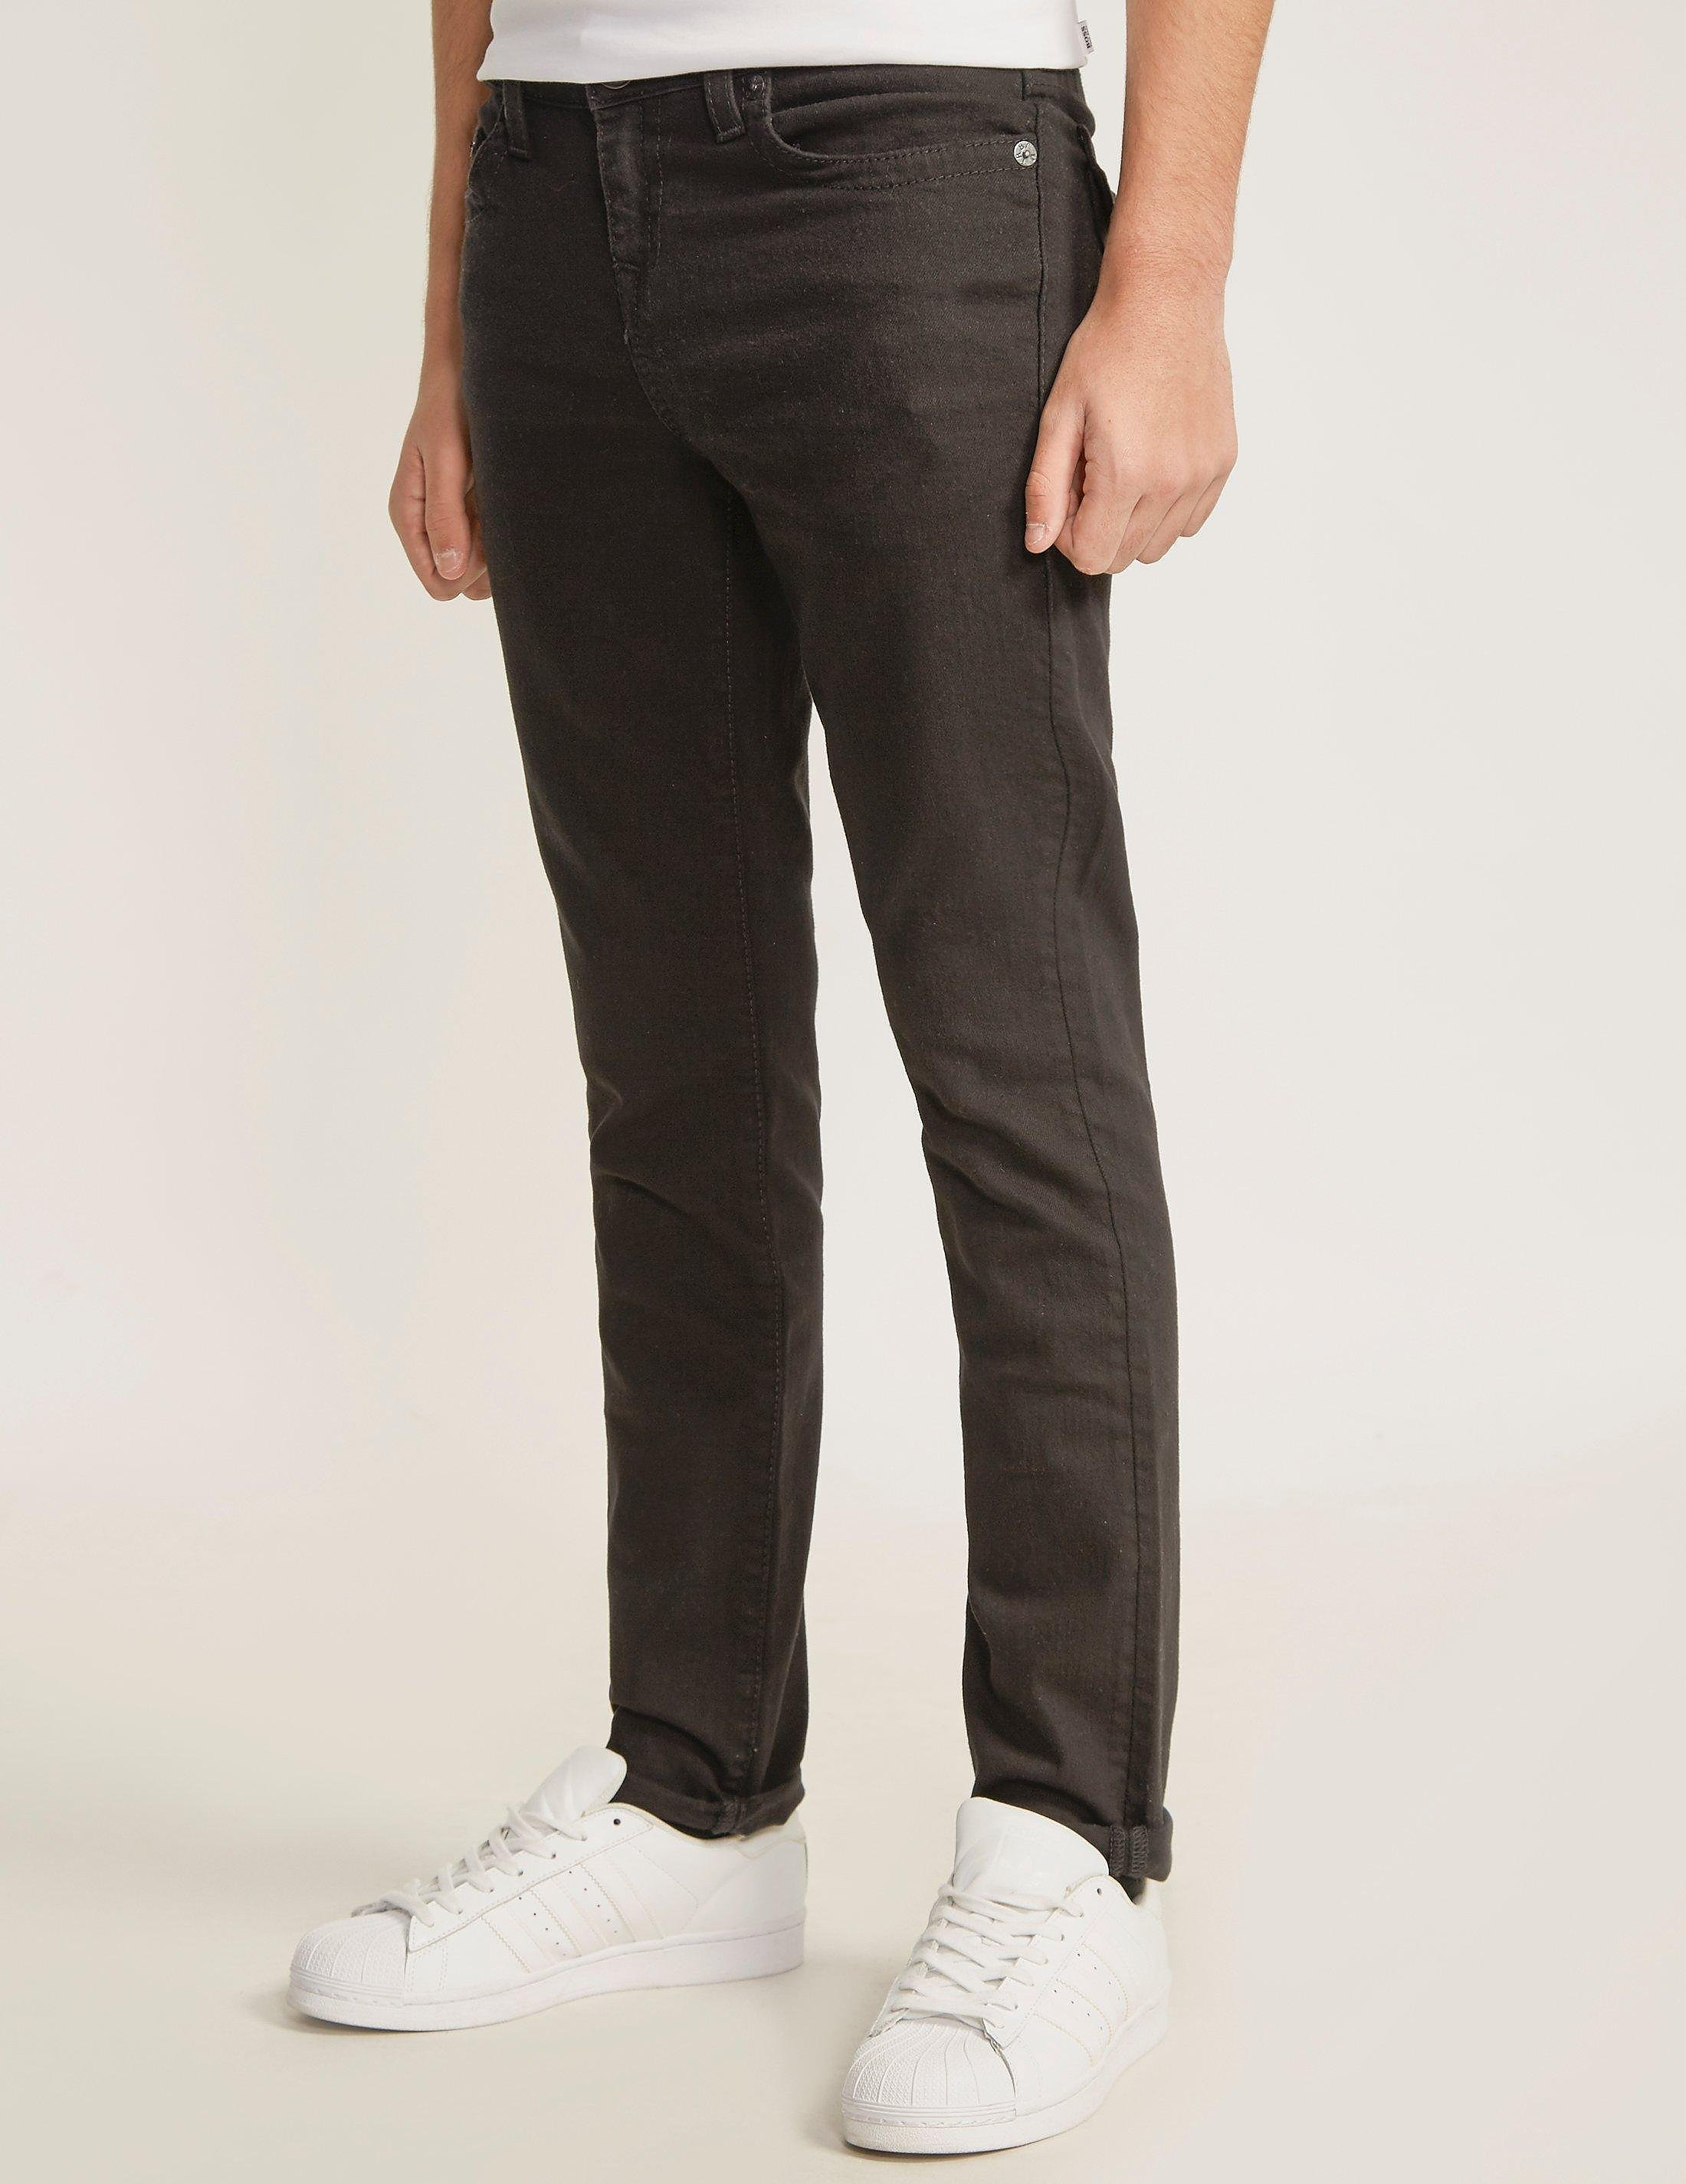 True Religion Geno Trousers